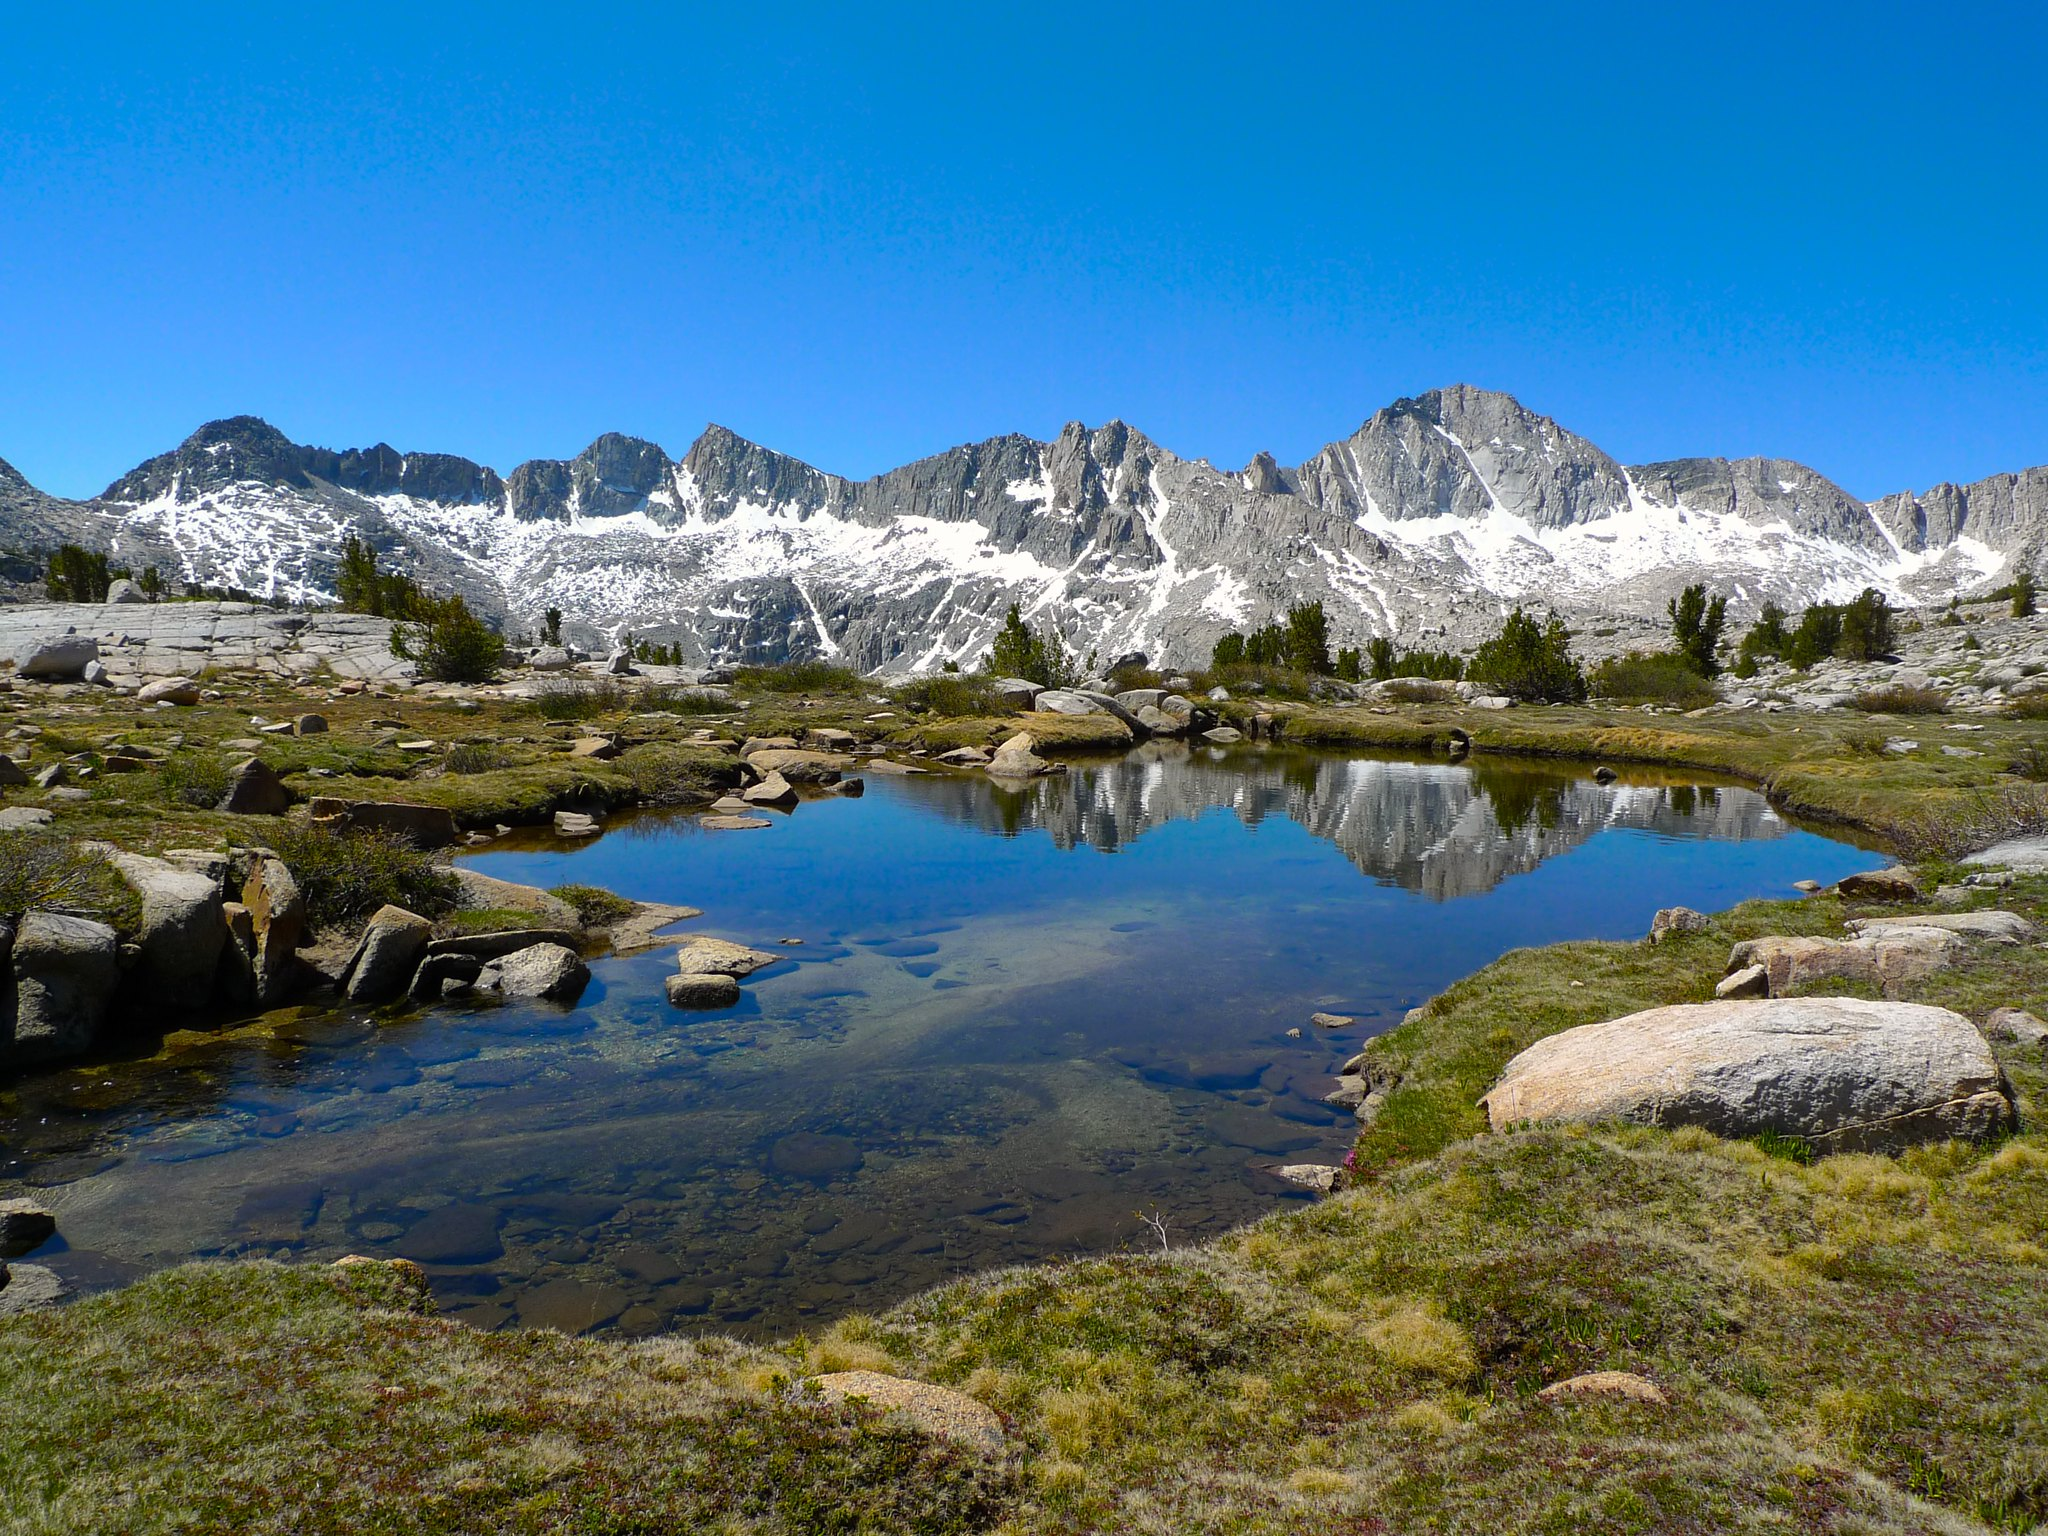 Surreal ponds surrounded by impressive peaks in Dusy Basin